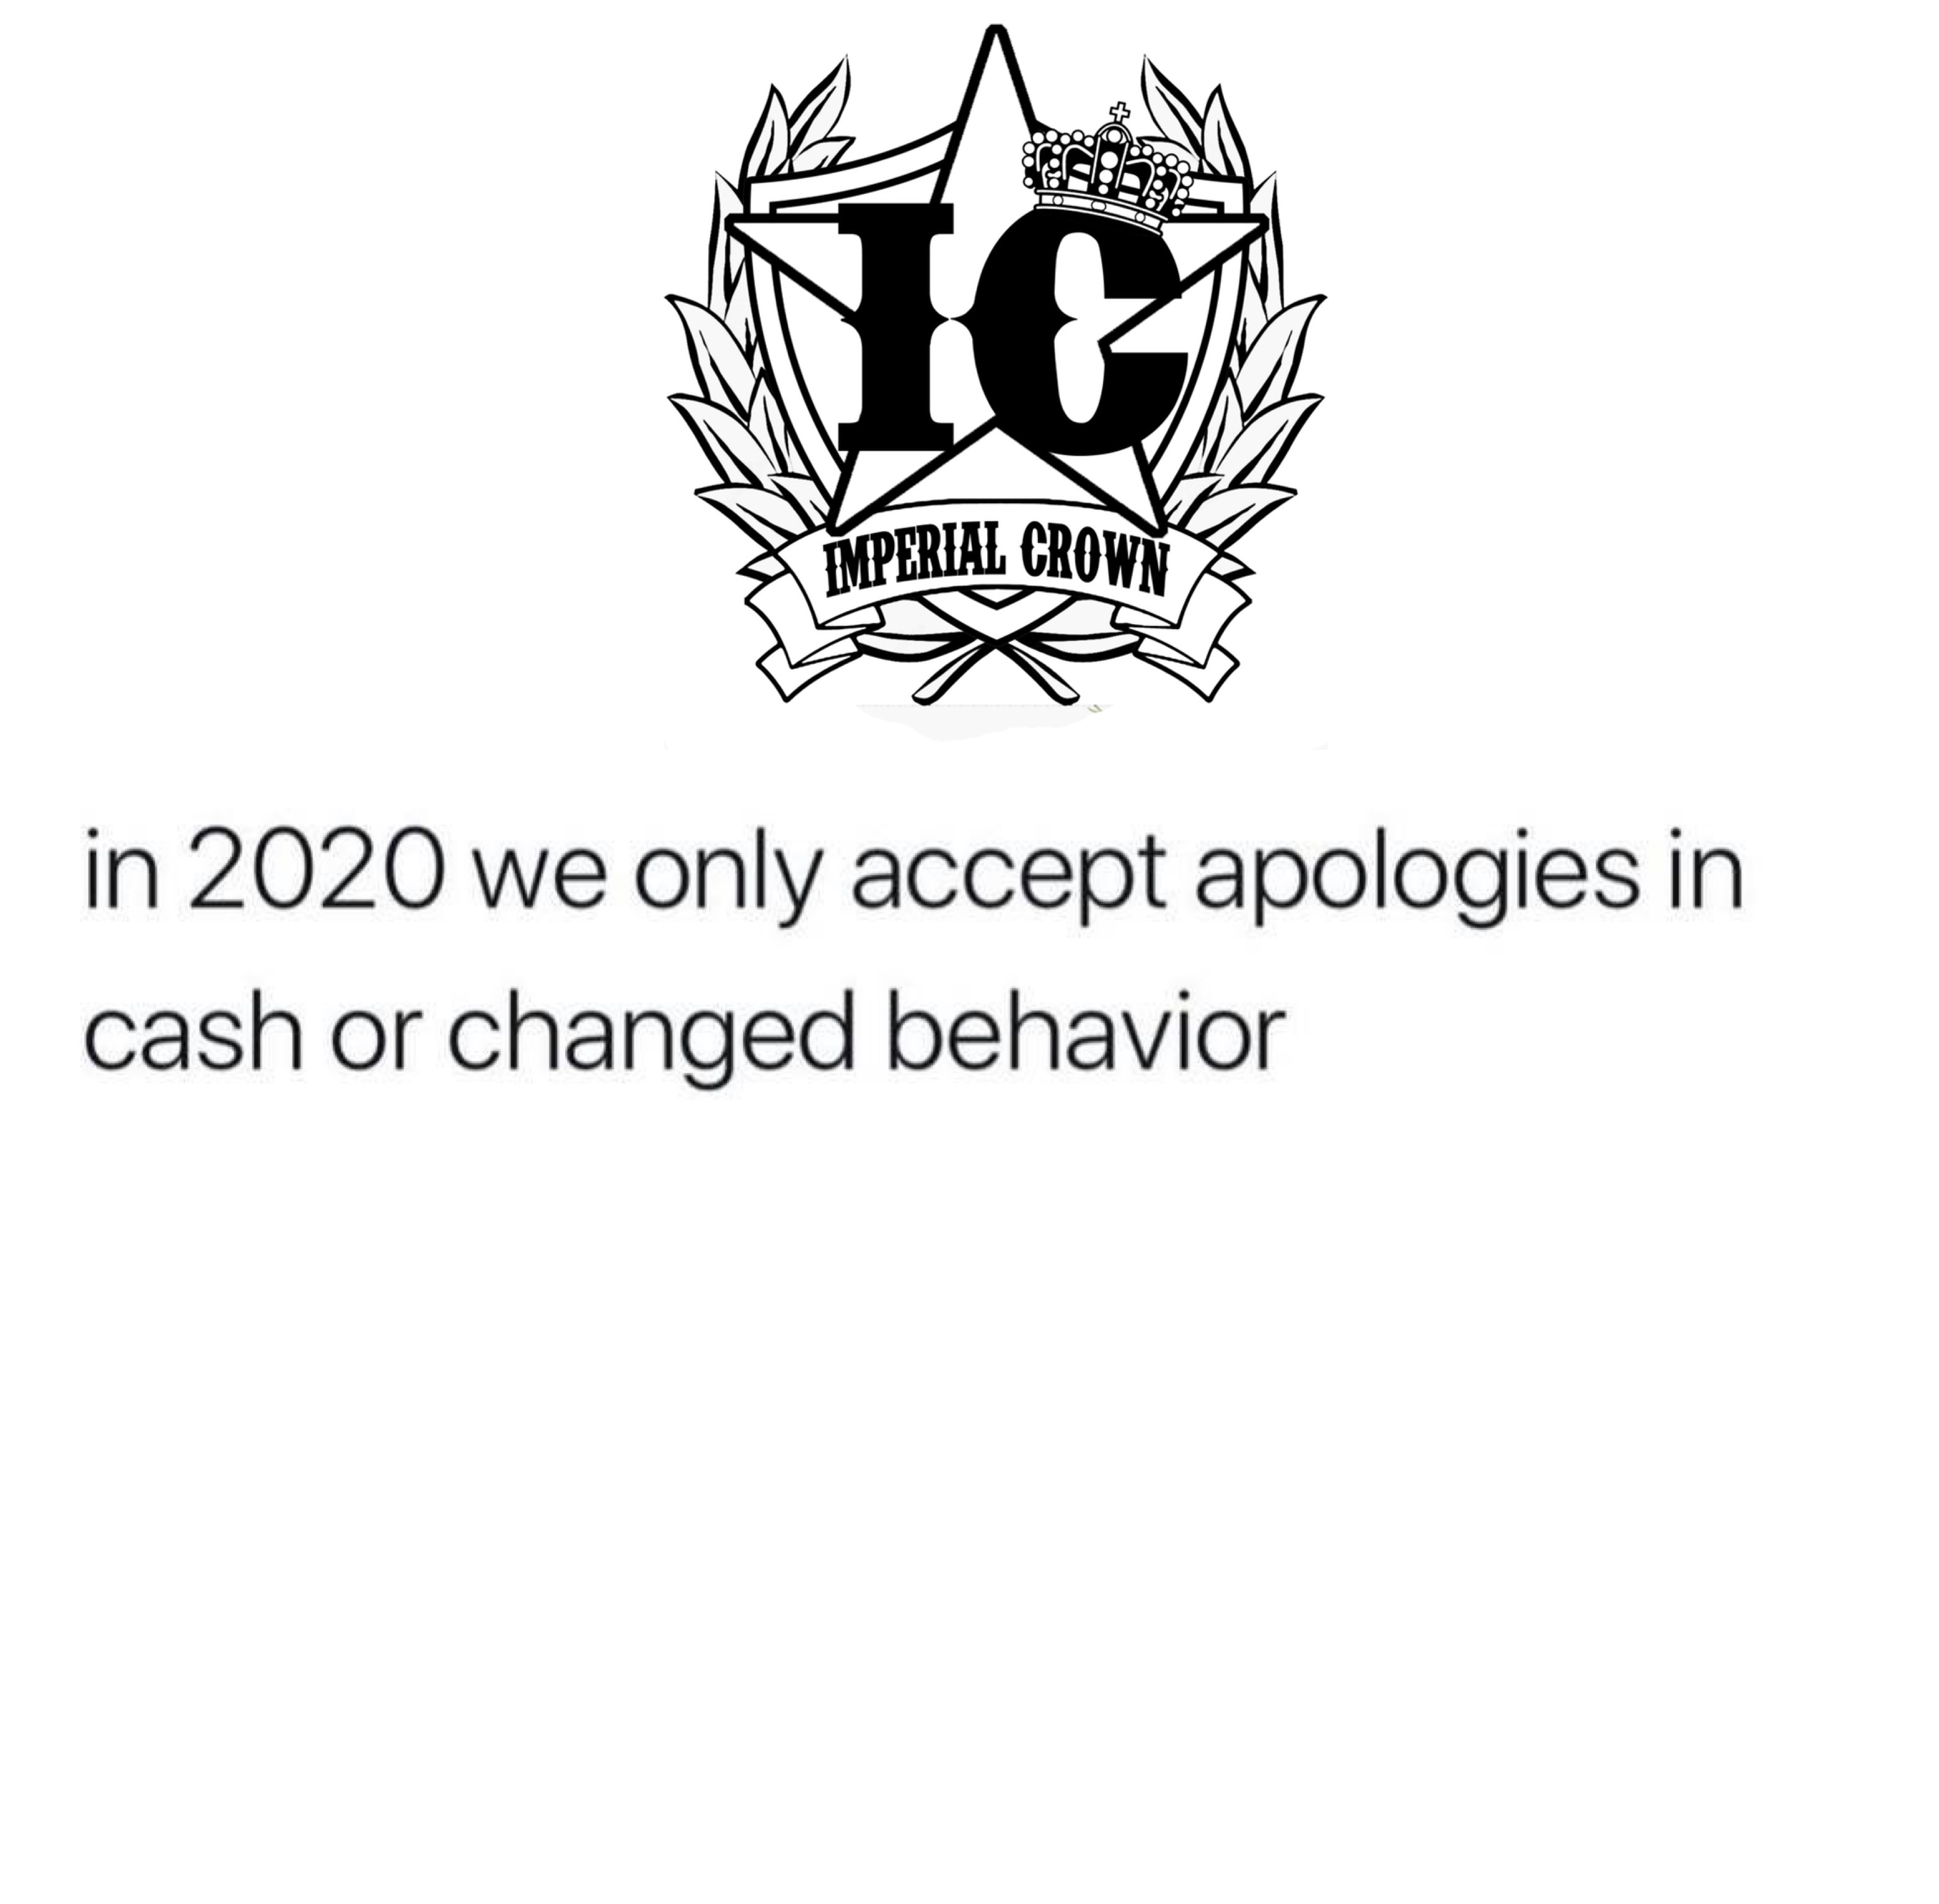 In 2020 we only accept apologies in cash